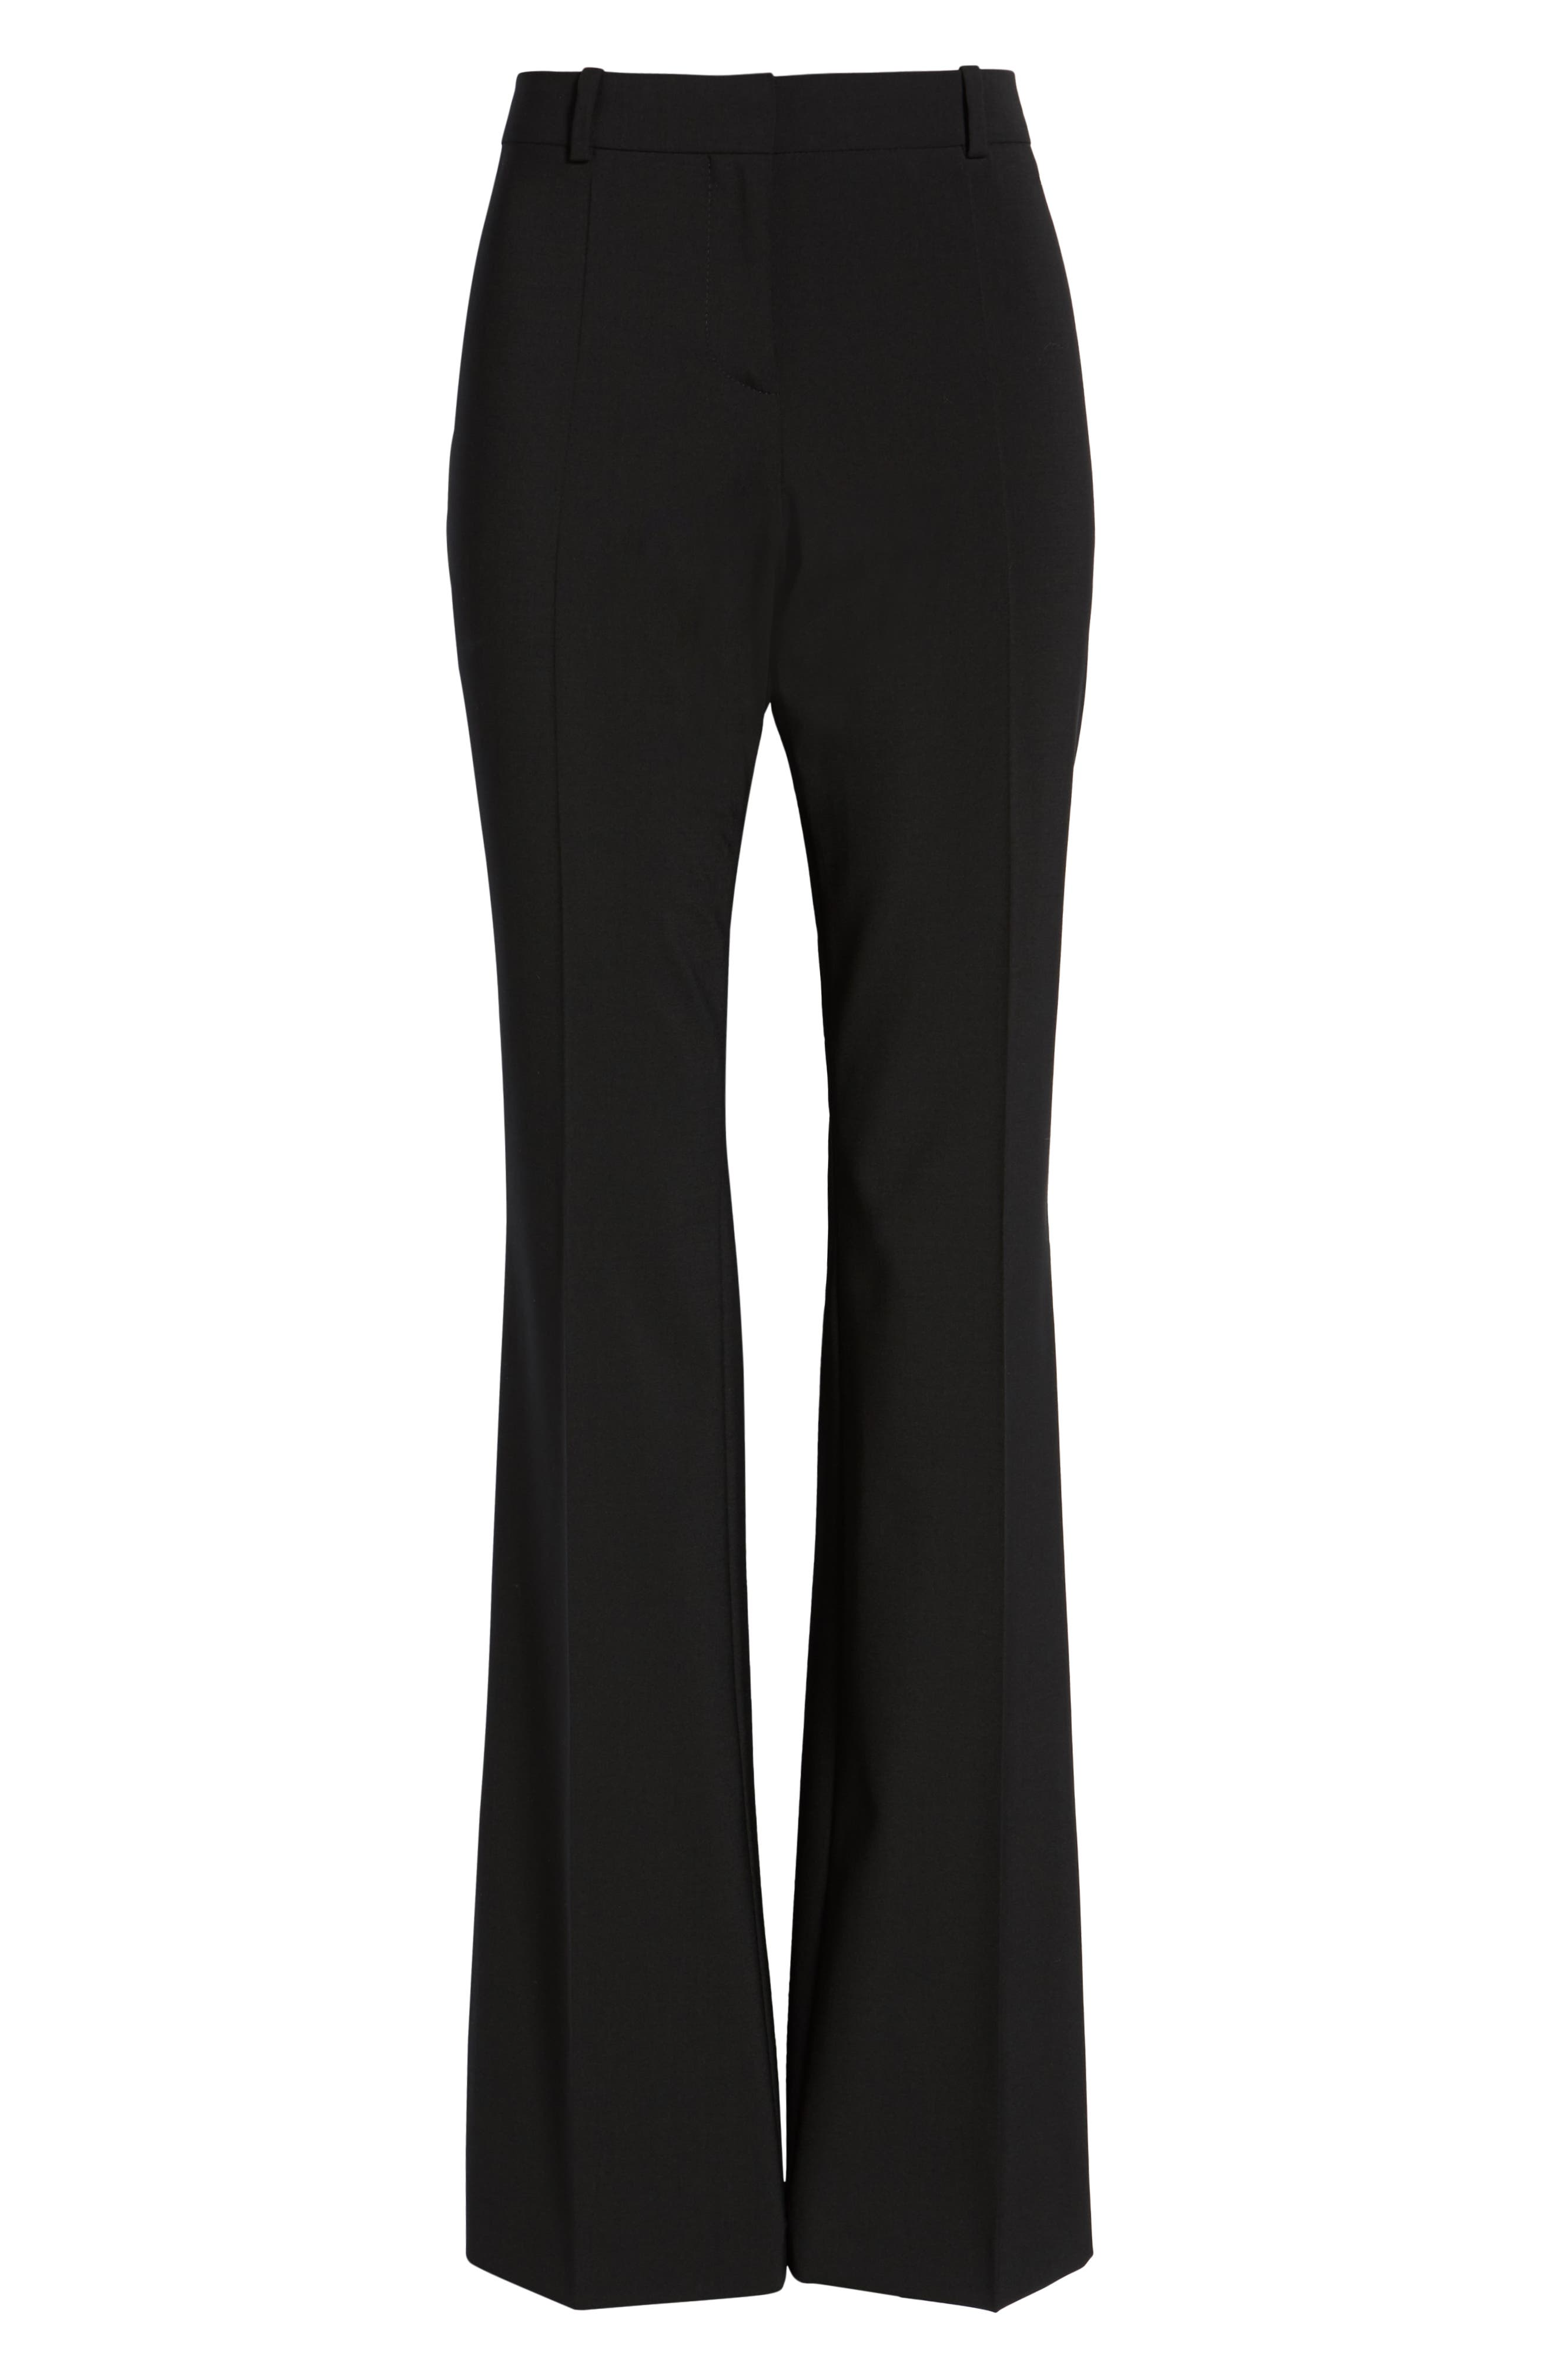 BOSS, Tulea3 Tropical Stretch Wool Trousers, Alternate thumbnail 2, color, BLACK